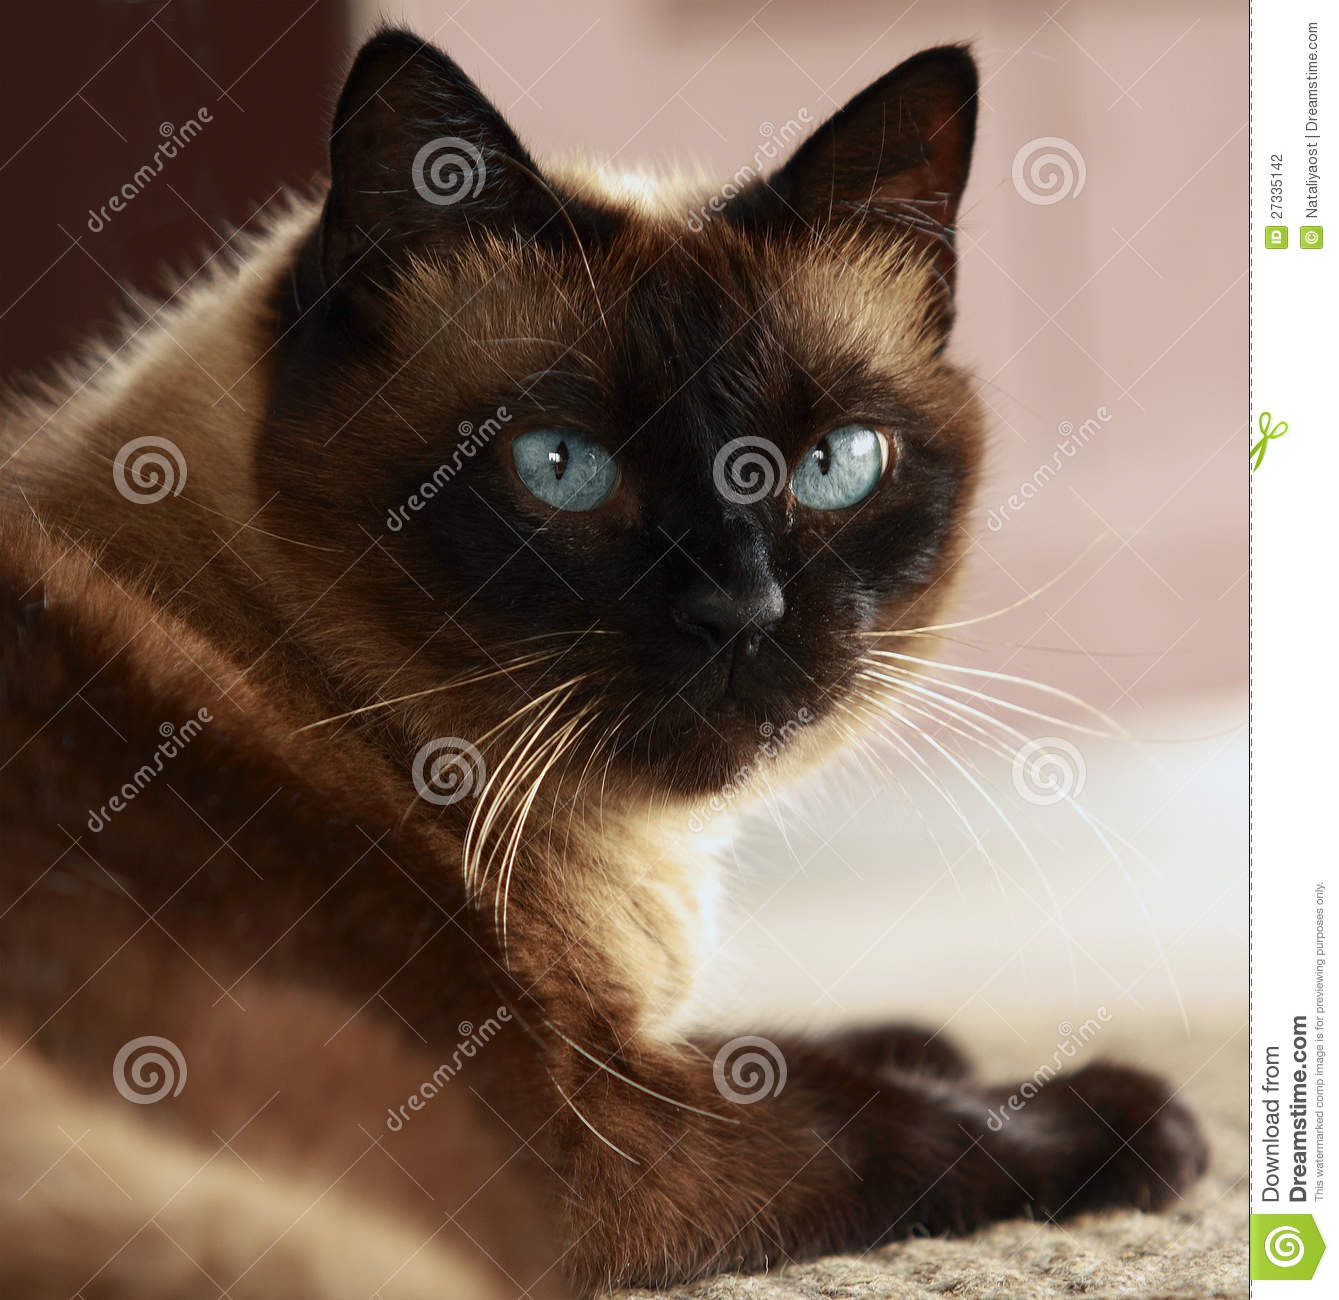 Siamese Cat With Blue Eyes Stock Photography - Image: 27335142